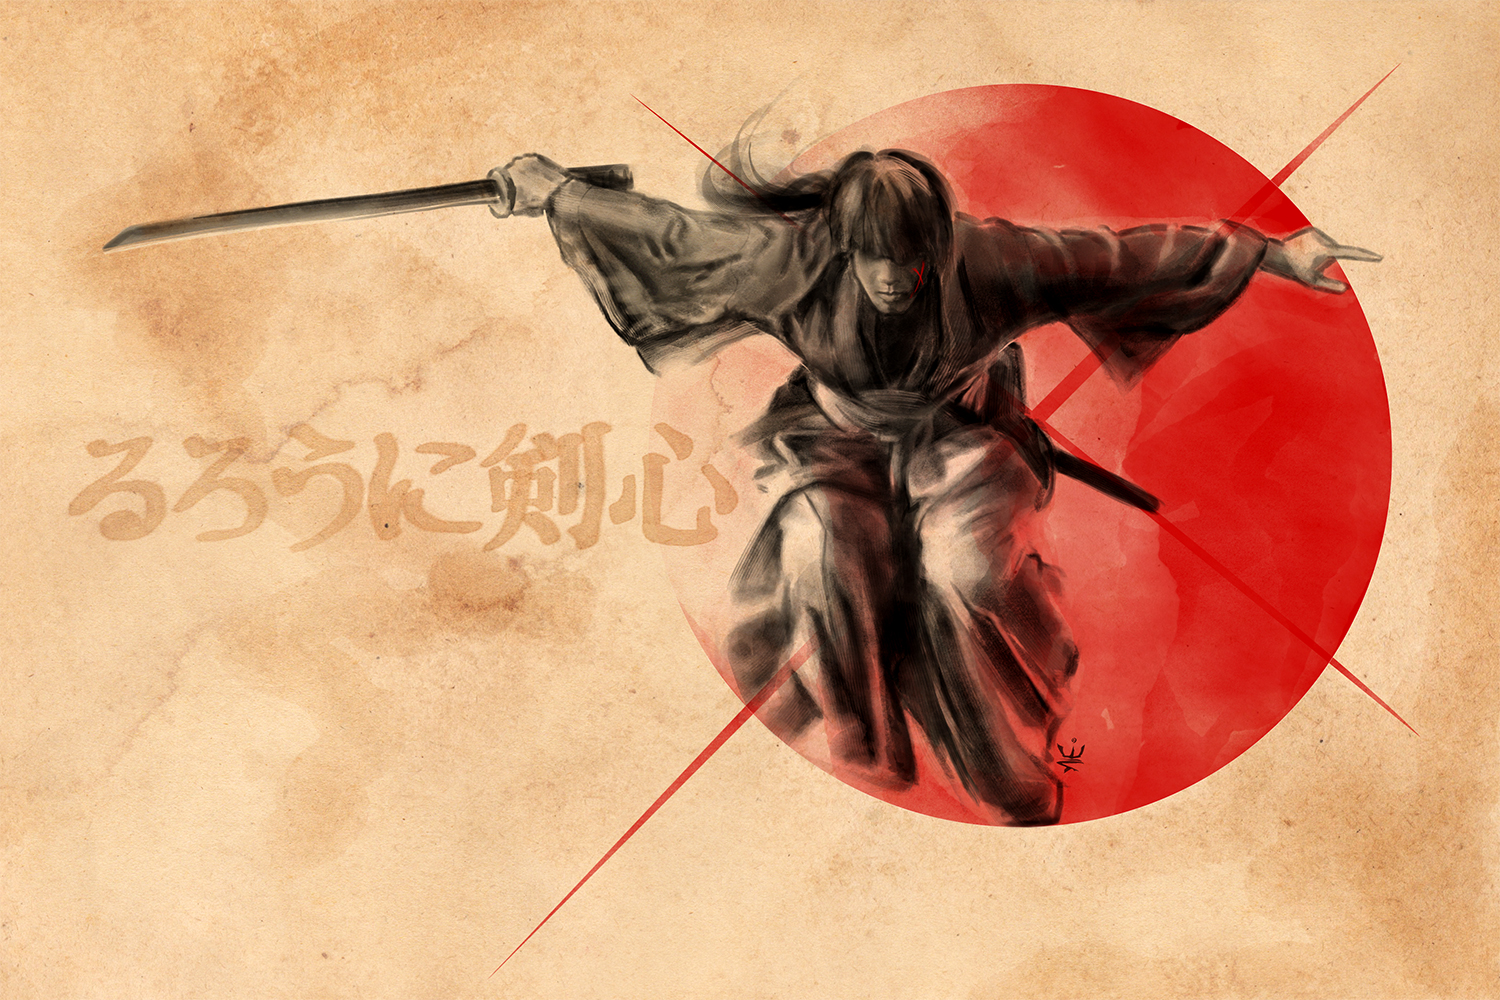 Rurouni Kenshin (ink style) by Esther Wagner